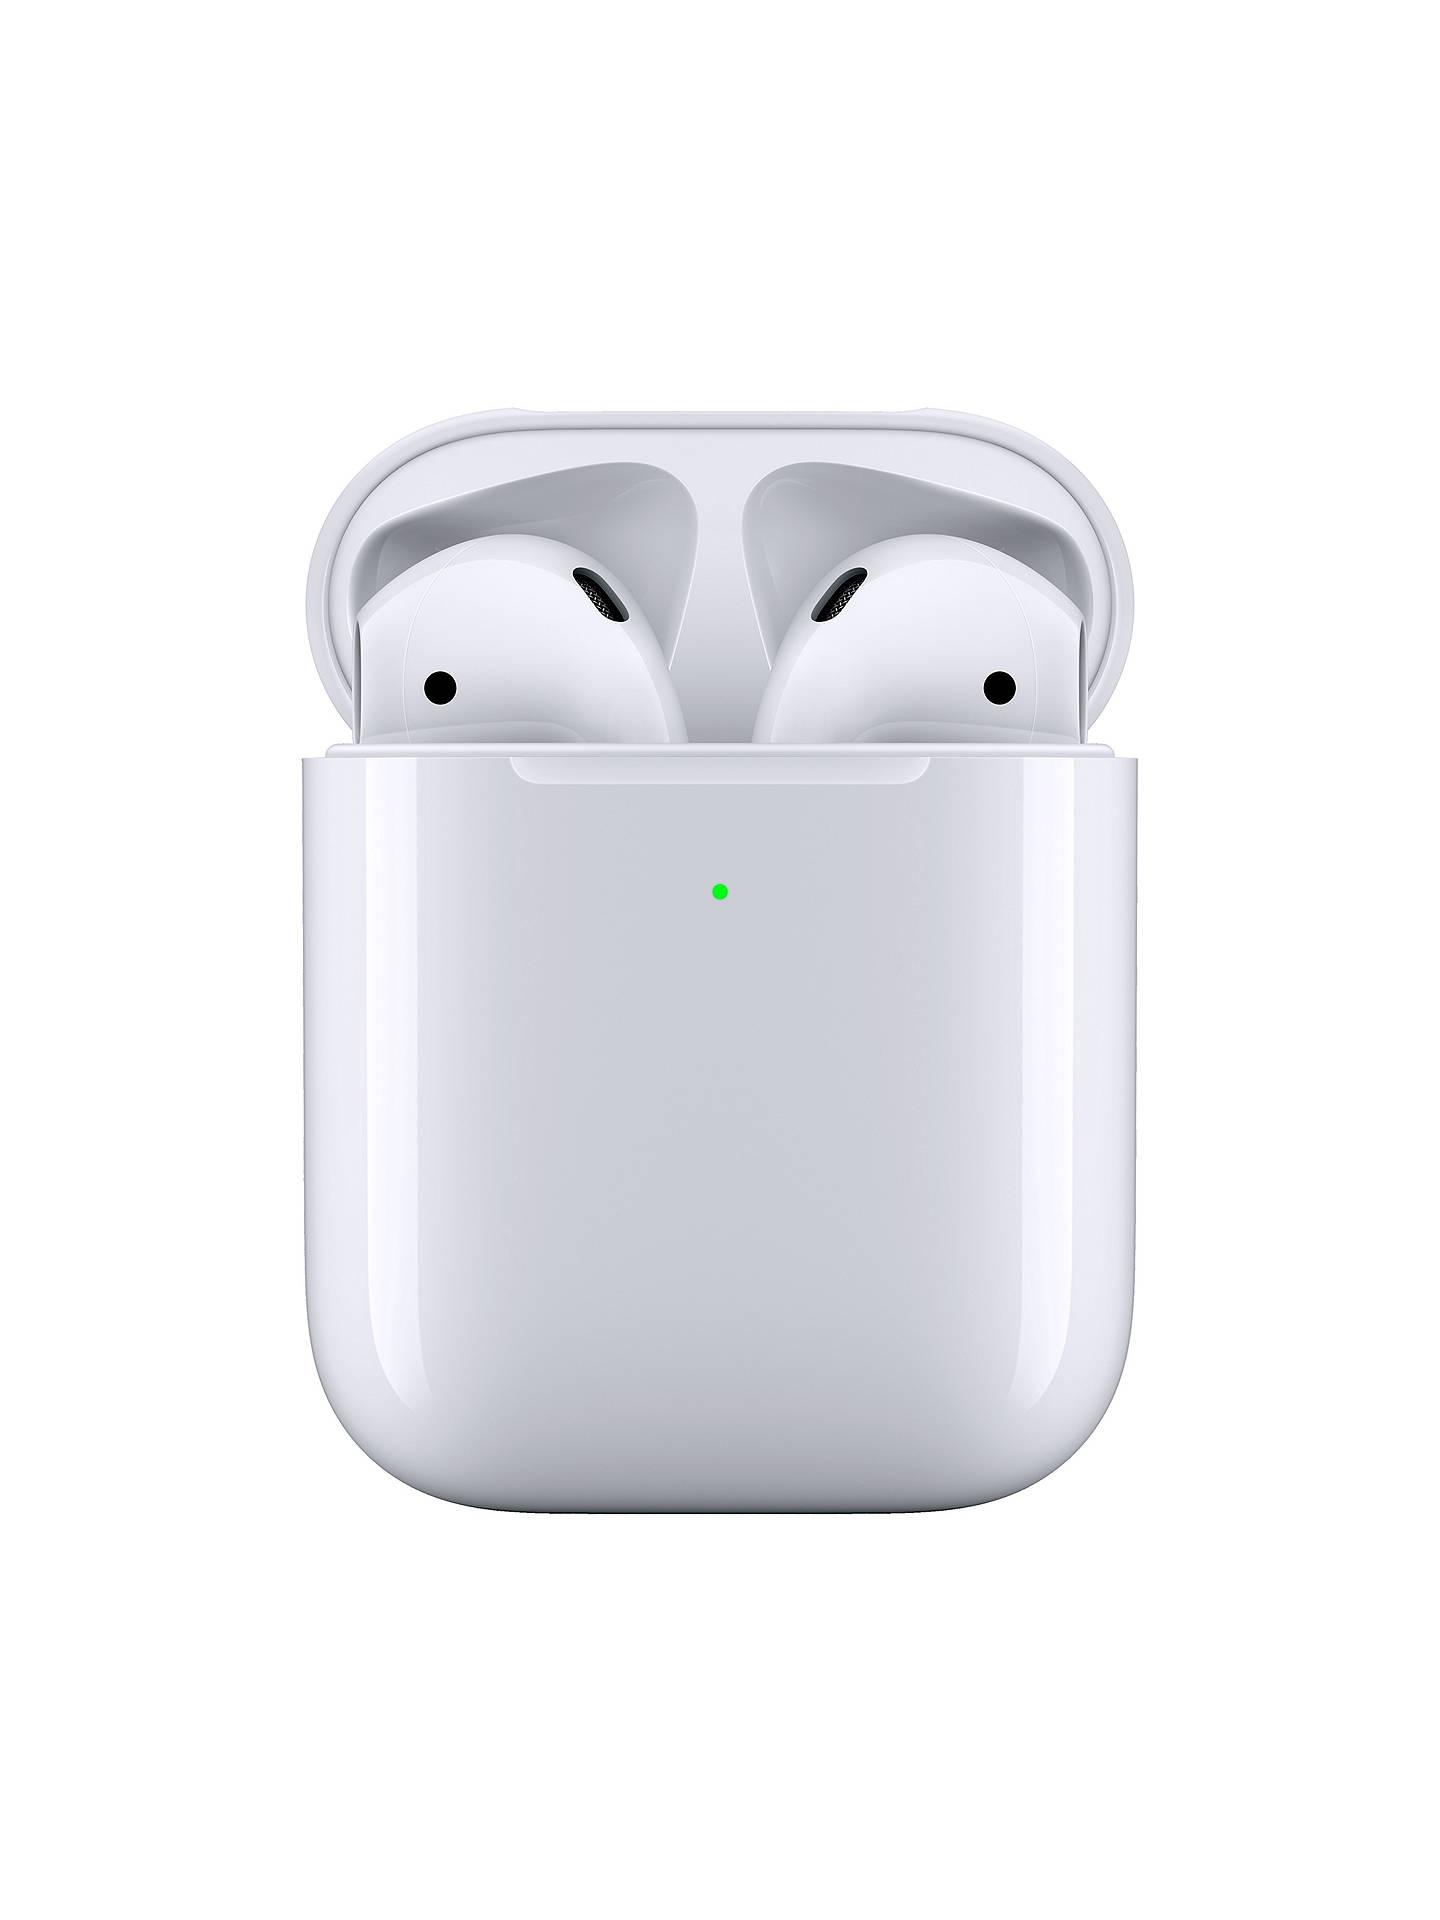 newest bb0da 93470 2019 Apple AirPods with Wireless Charging Case